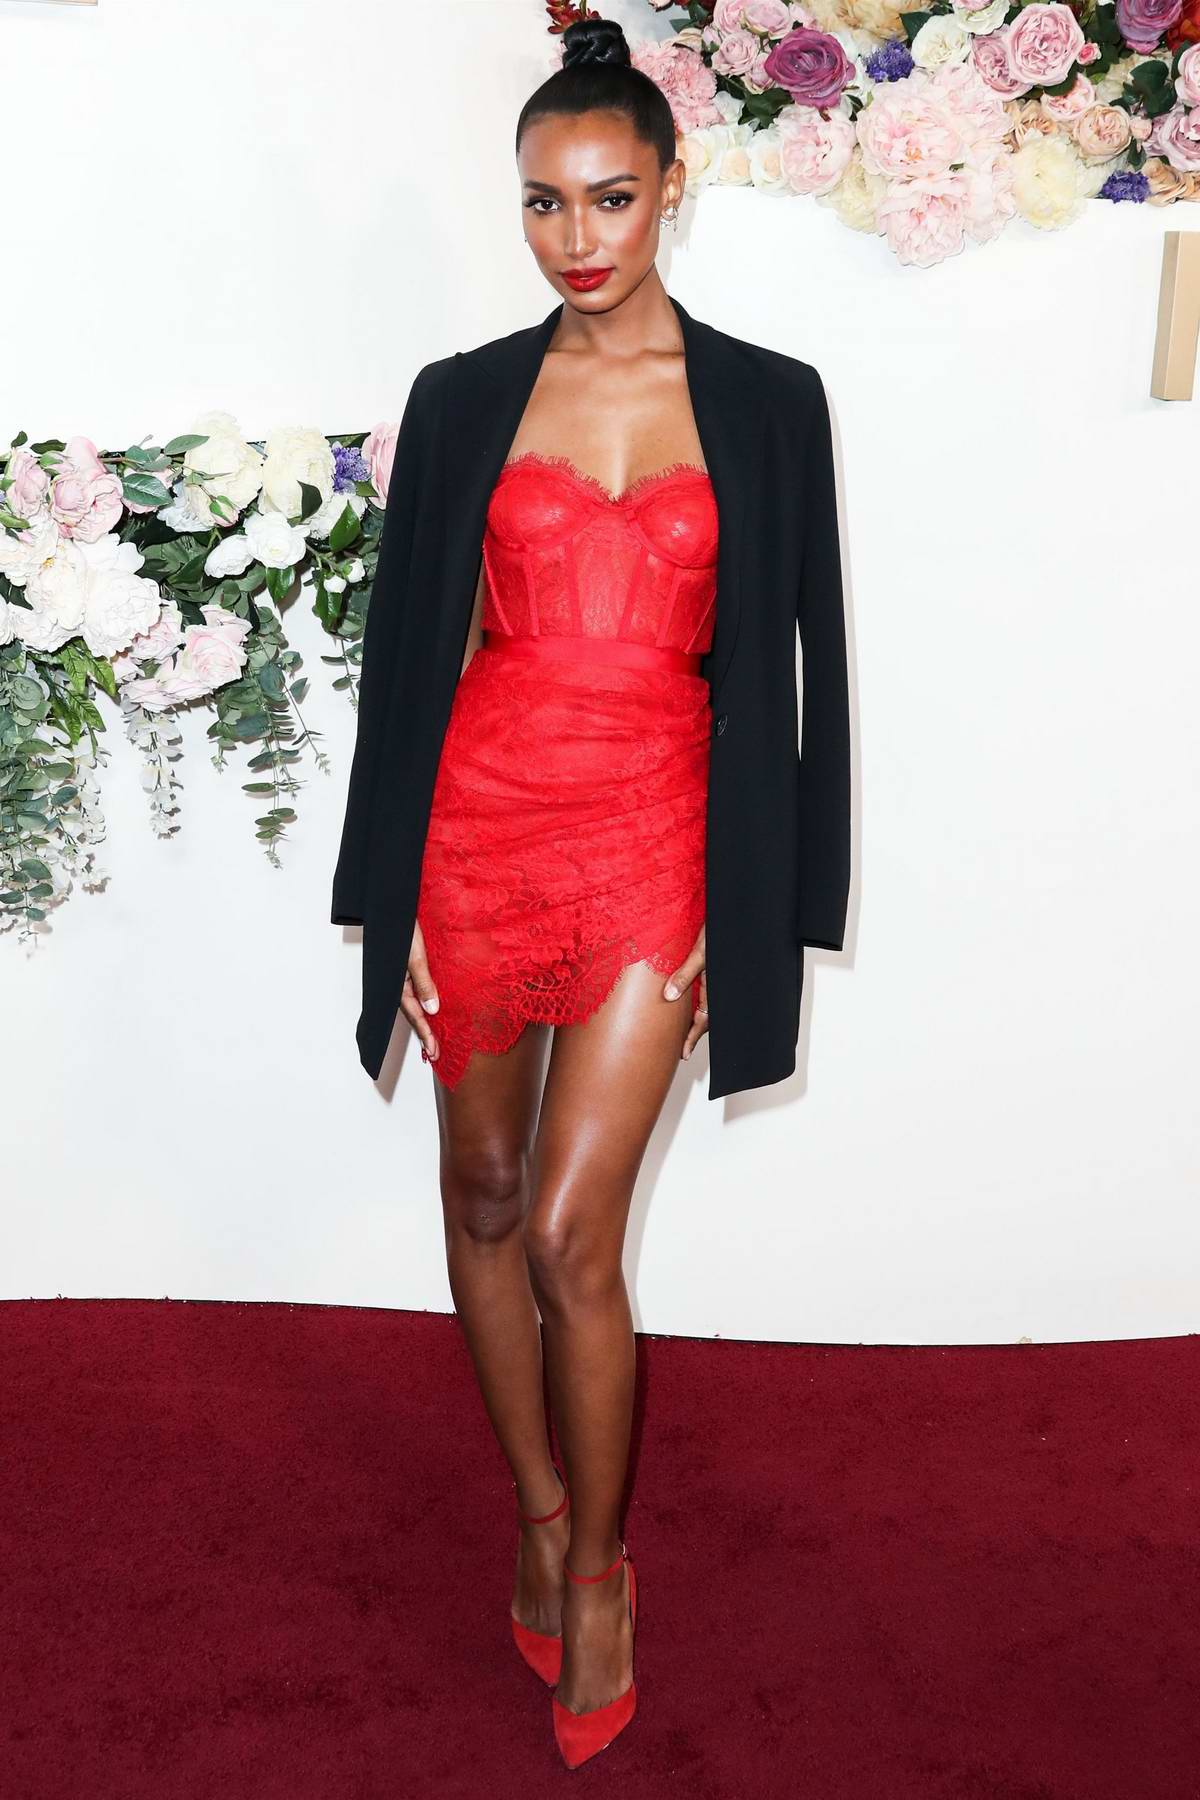 Jasmine Tookes attends the 3rd Annual REVOLVE Awards at Goya Studios in Hollywood, California